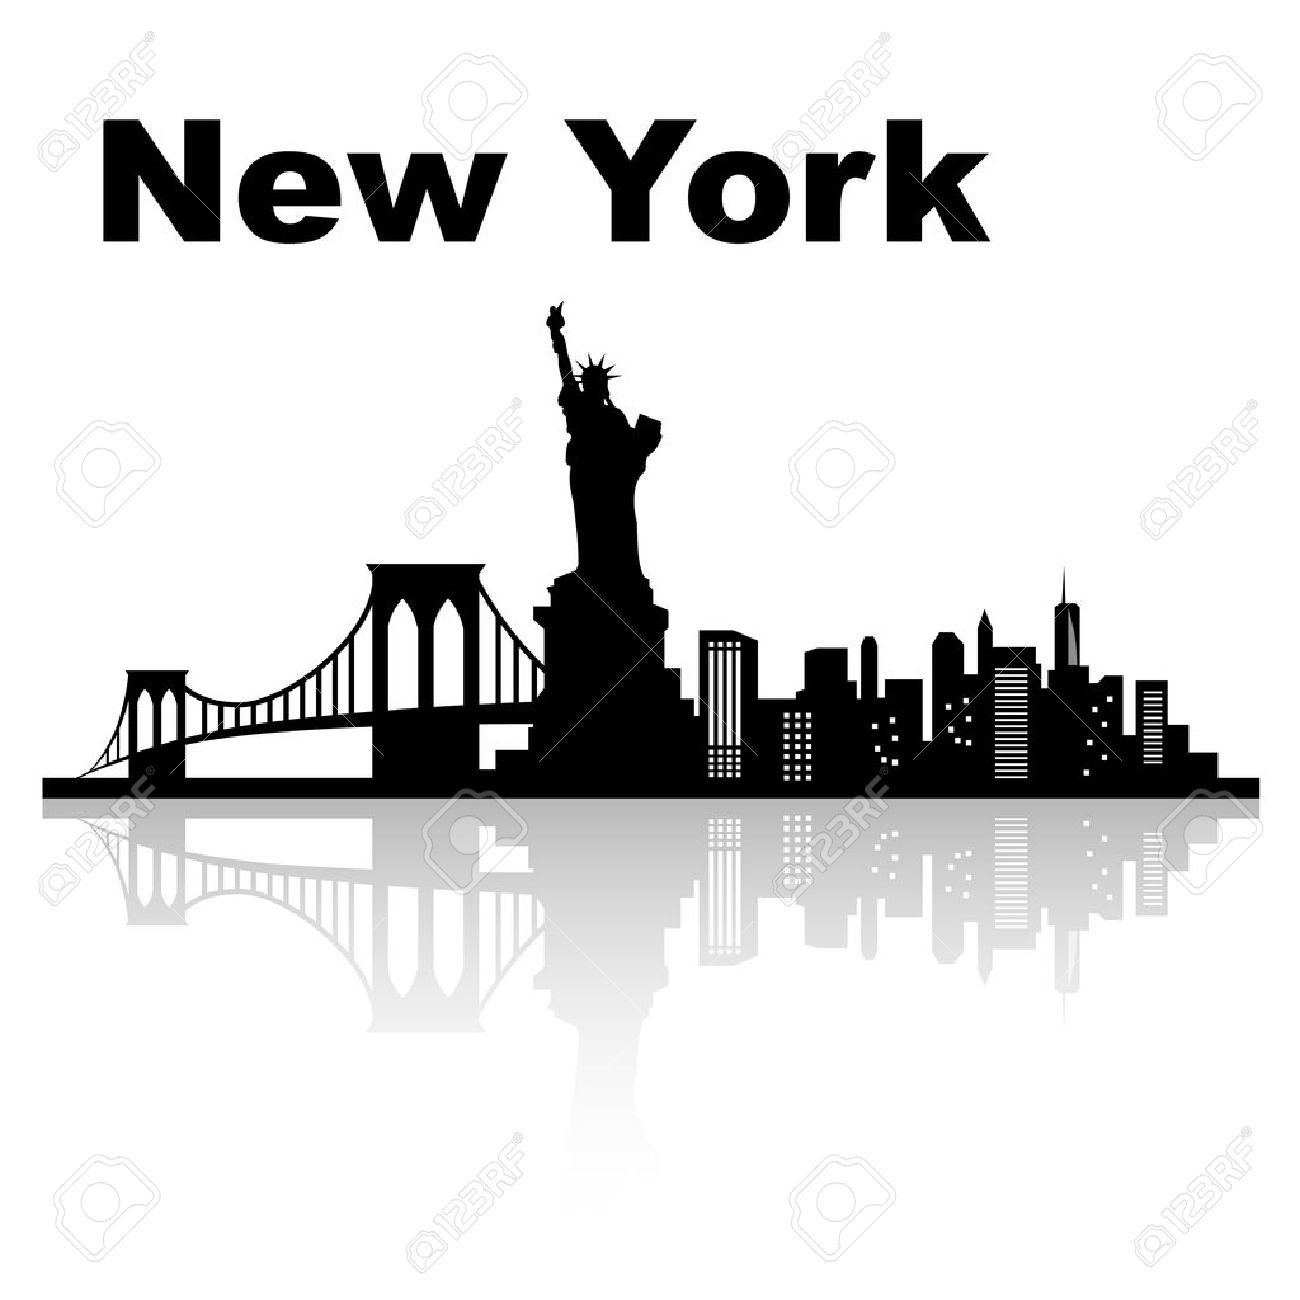 stock vector | new york skyline silhouette, new york